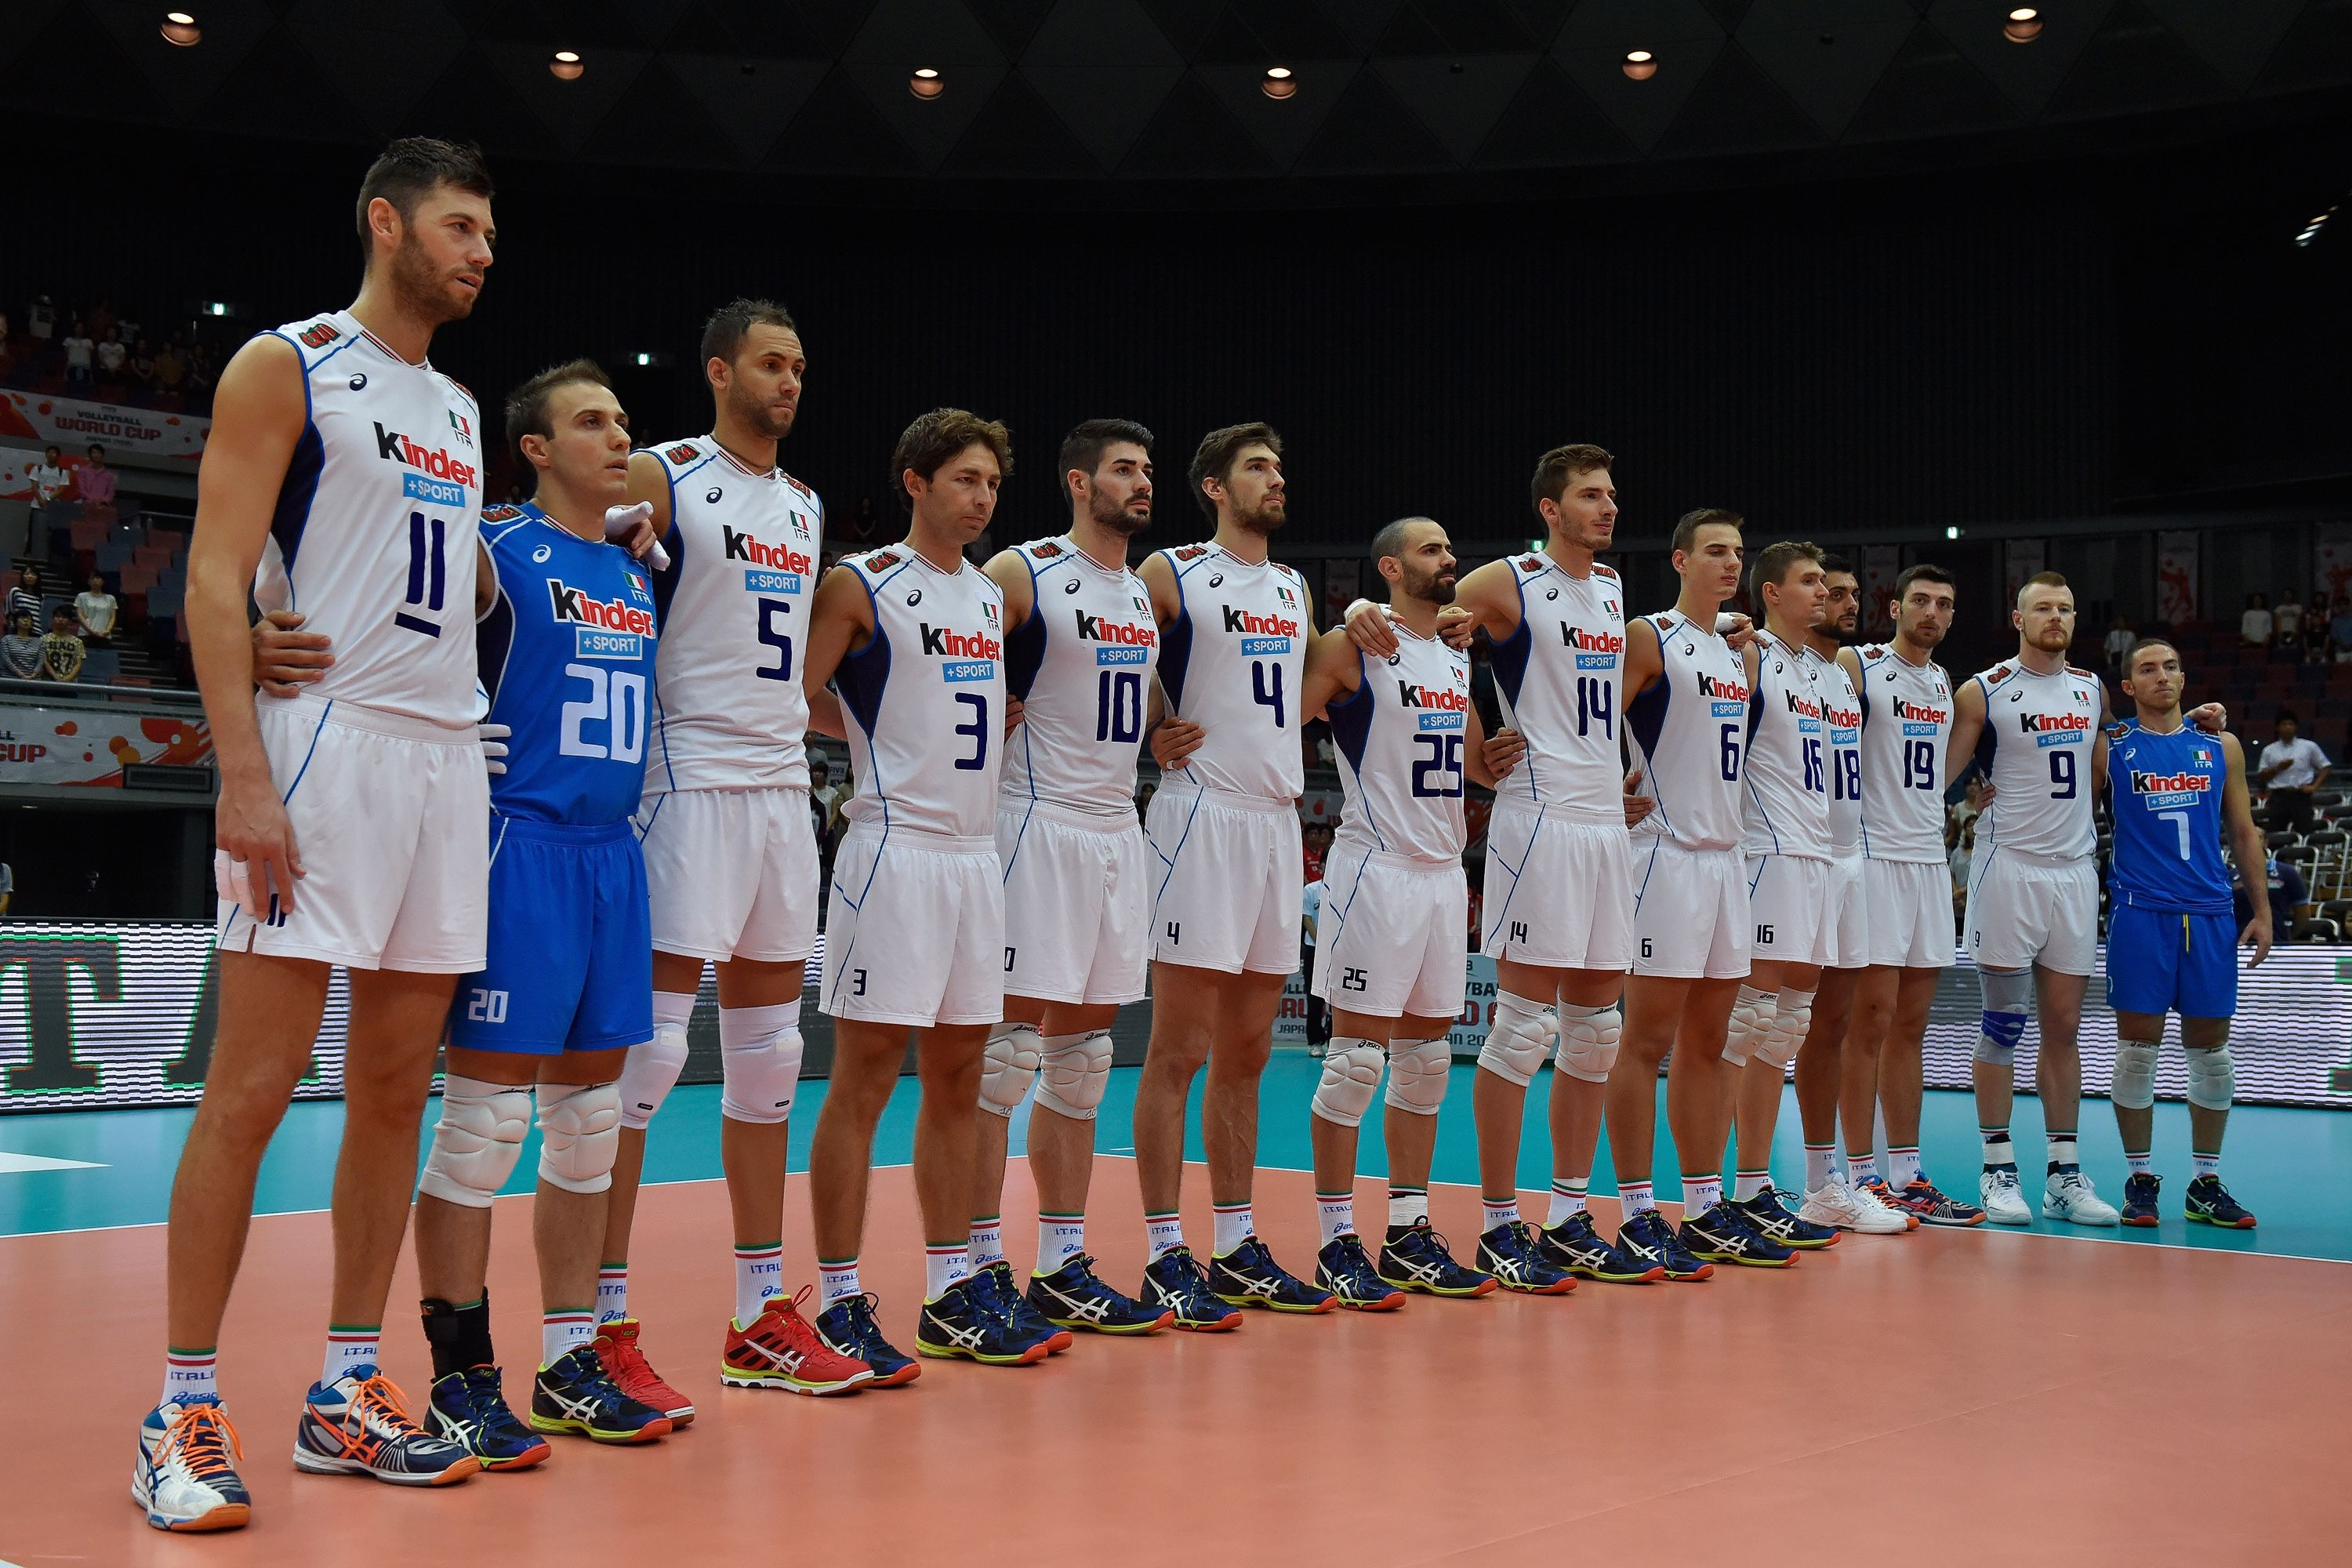 Team Italy Line Up For The National Anthem Before The Match Against Iran Anthem National Anthem Lineup